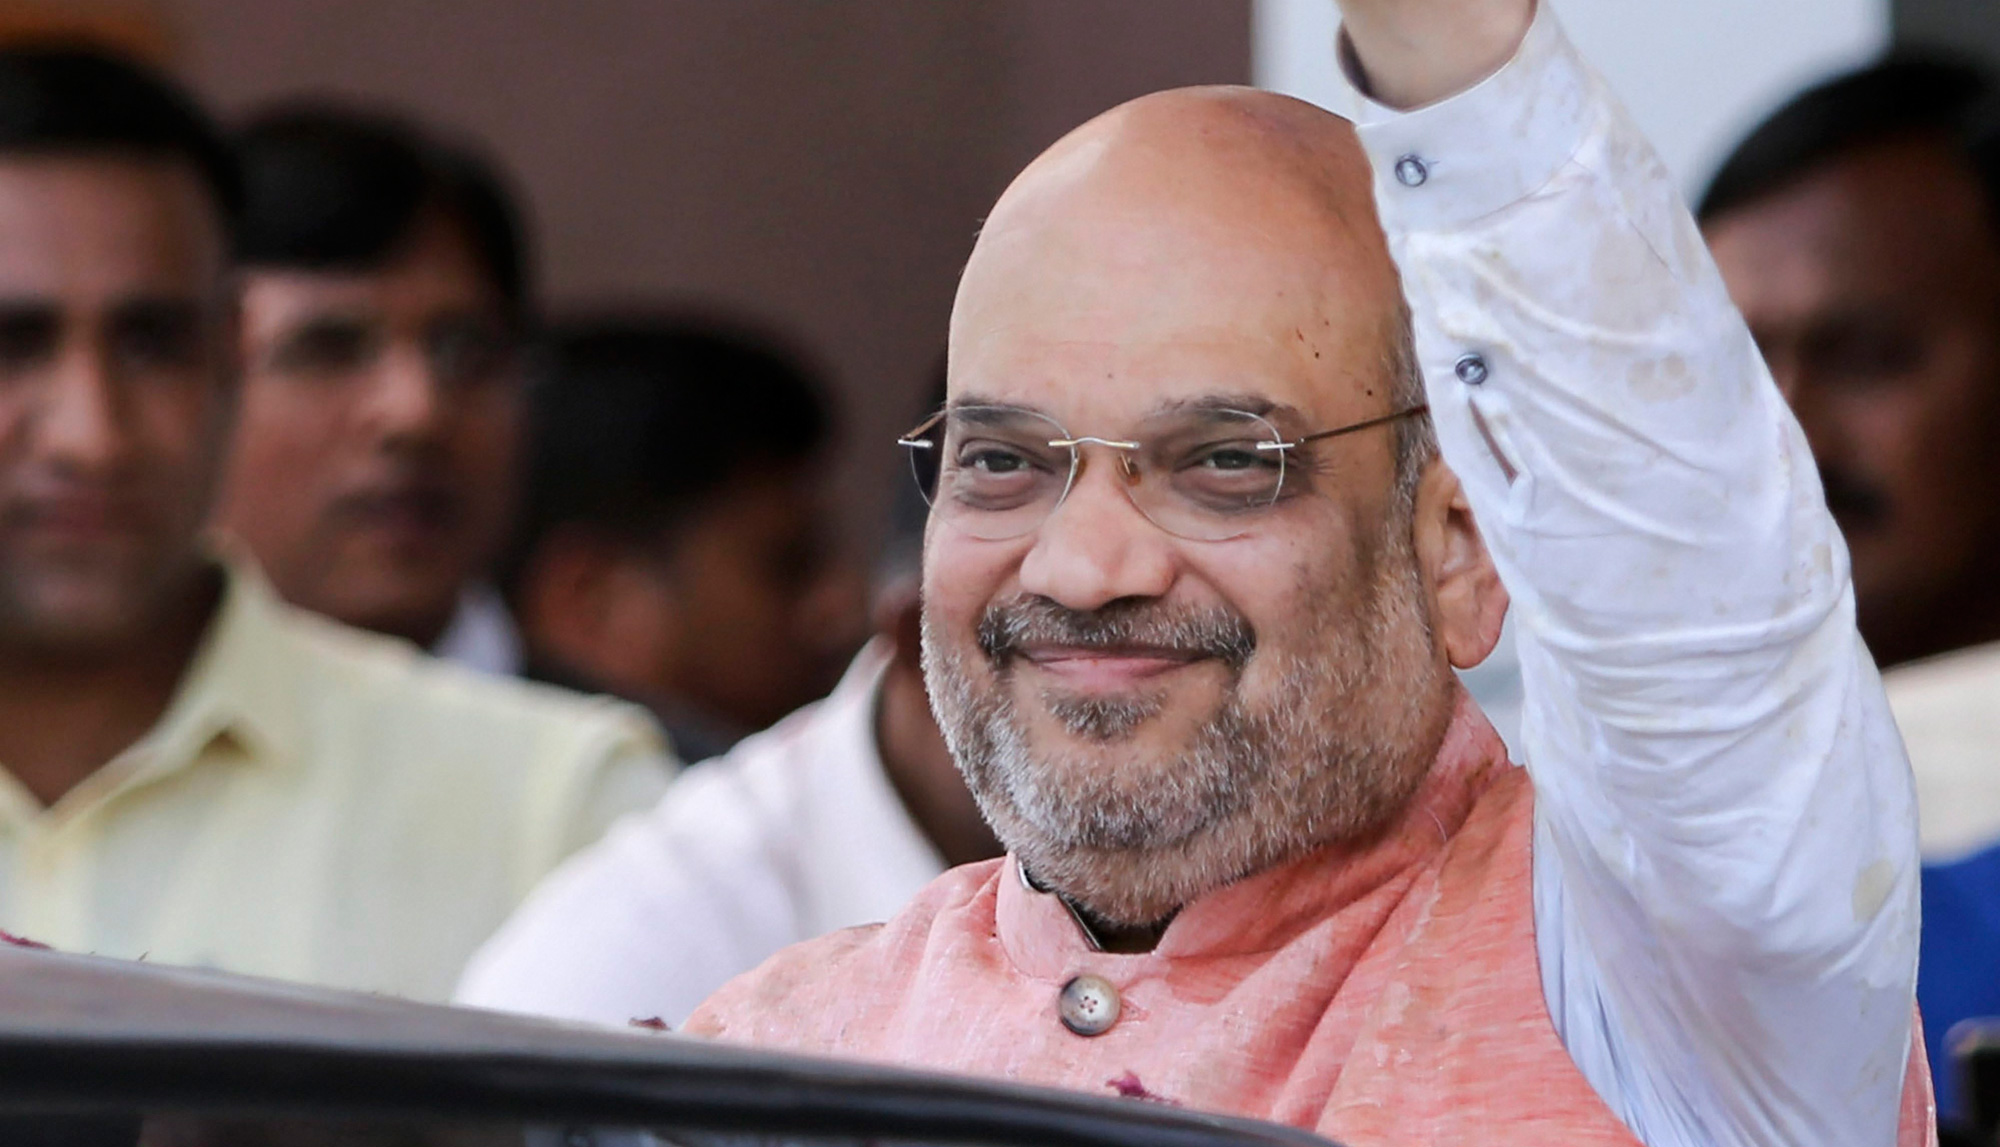 BJP national president Amit Shah had told an election campaign meeting in Alipurduar on Friday that the NRC exercise would be carried out in Bengal if the party came to power.